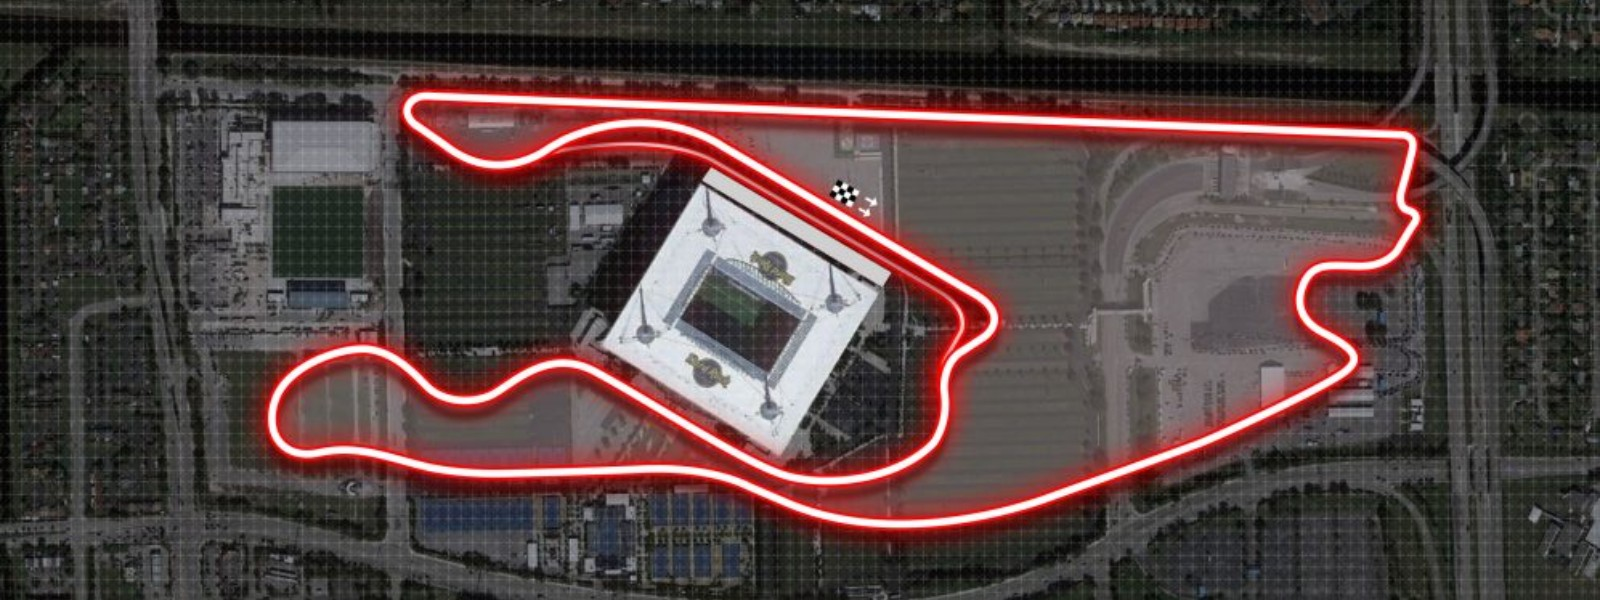 Miami Grand Prix to join F1 calendar in 2022, with exciting new circuit planned